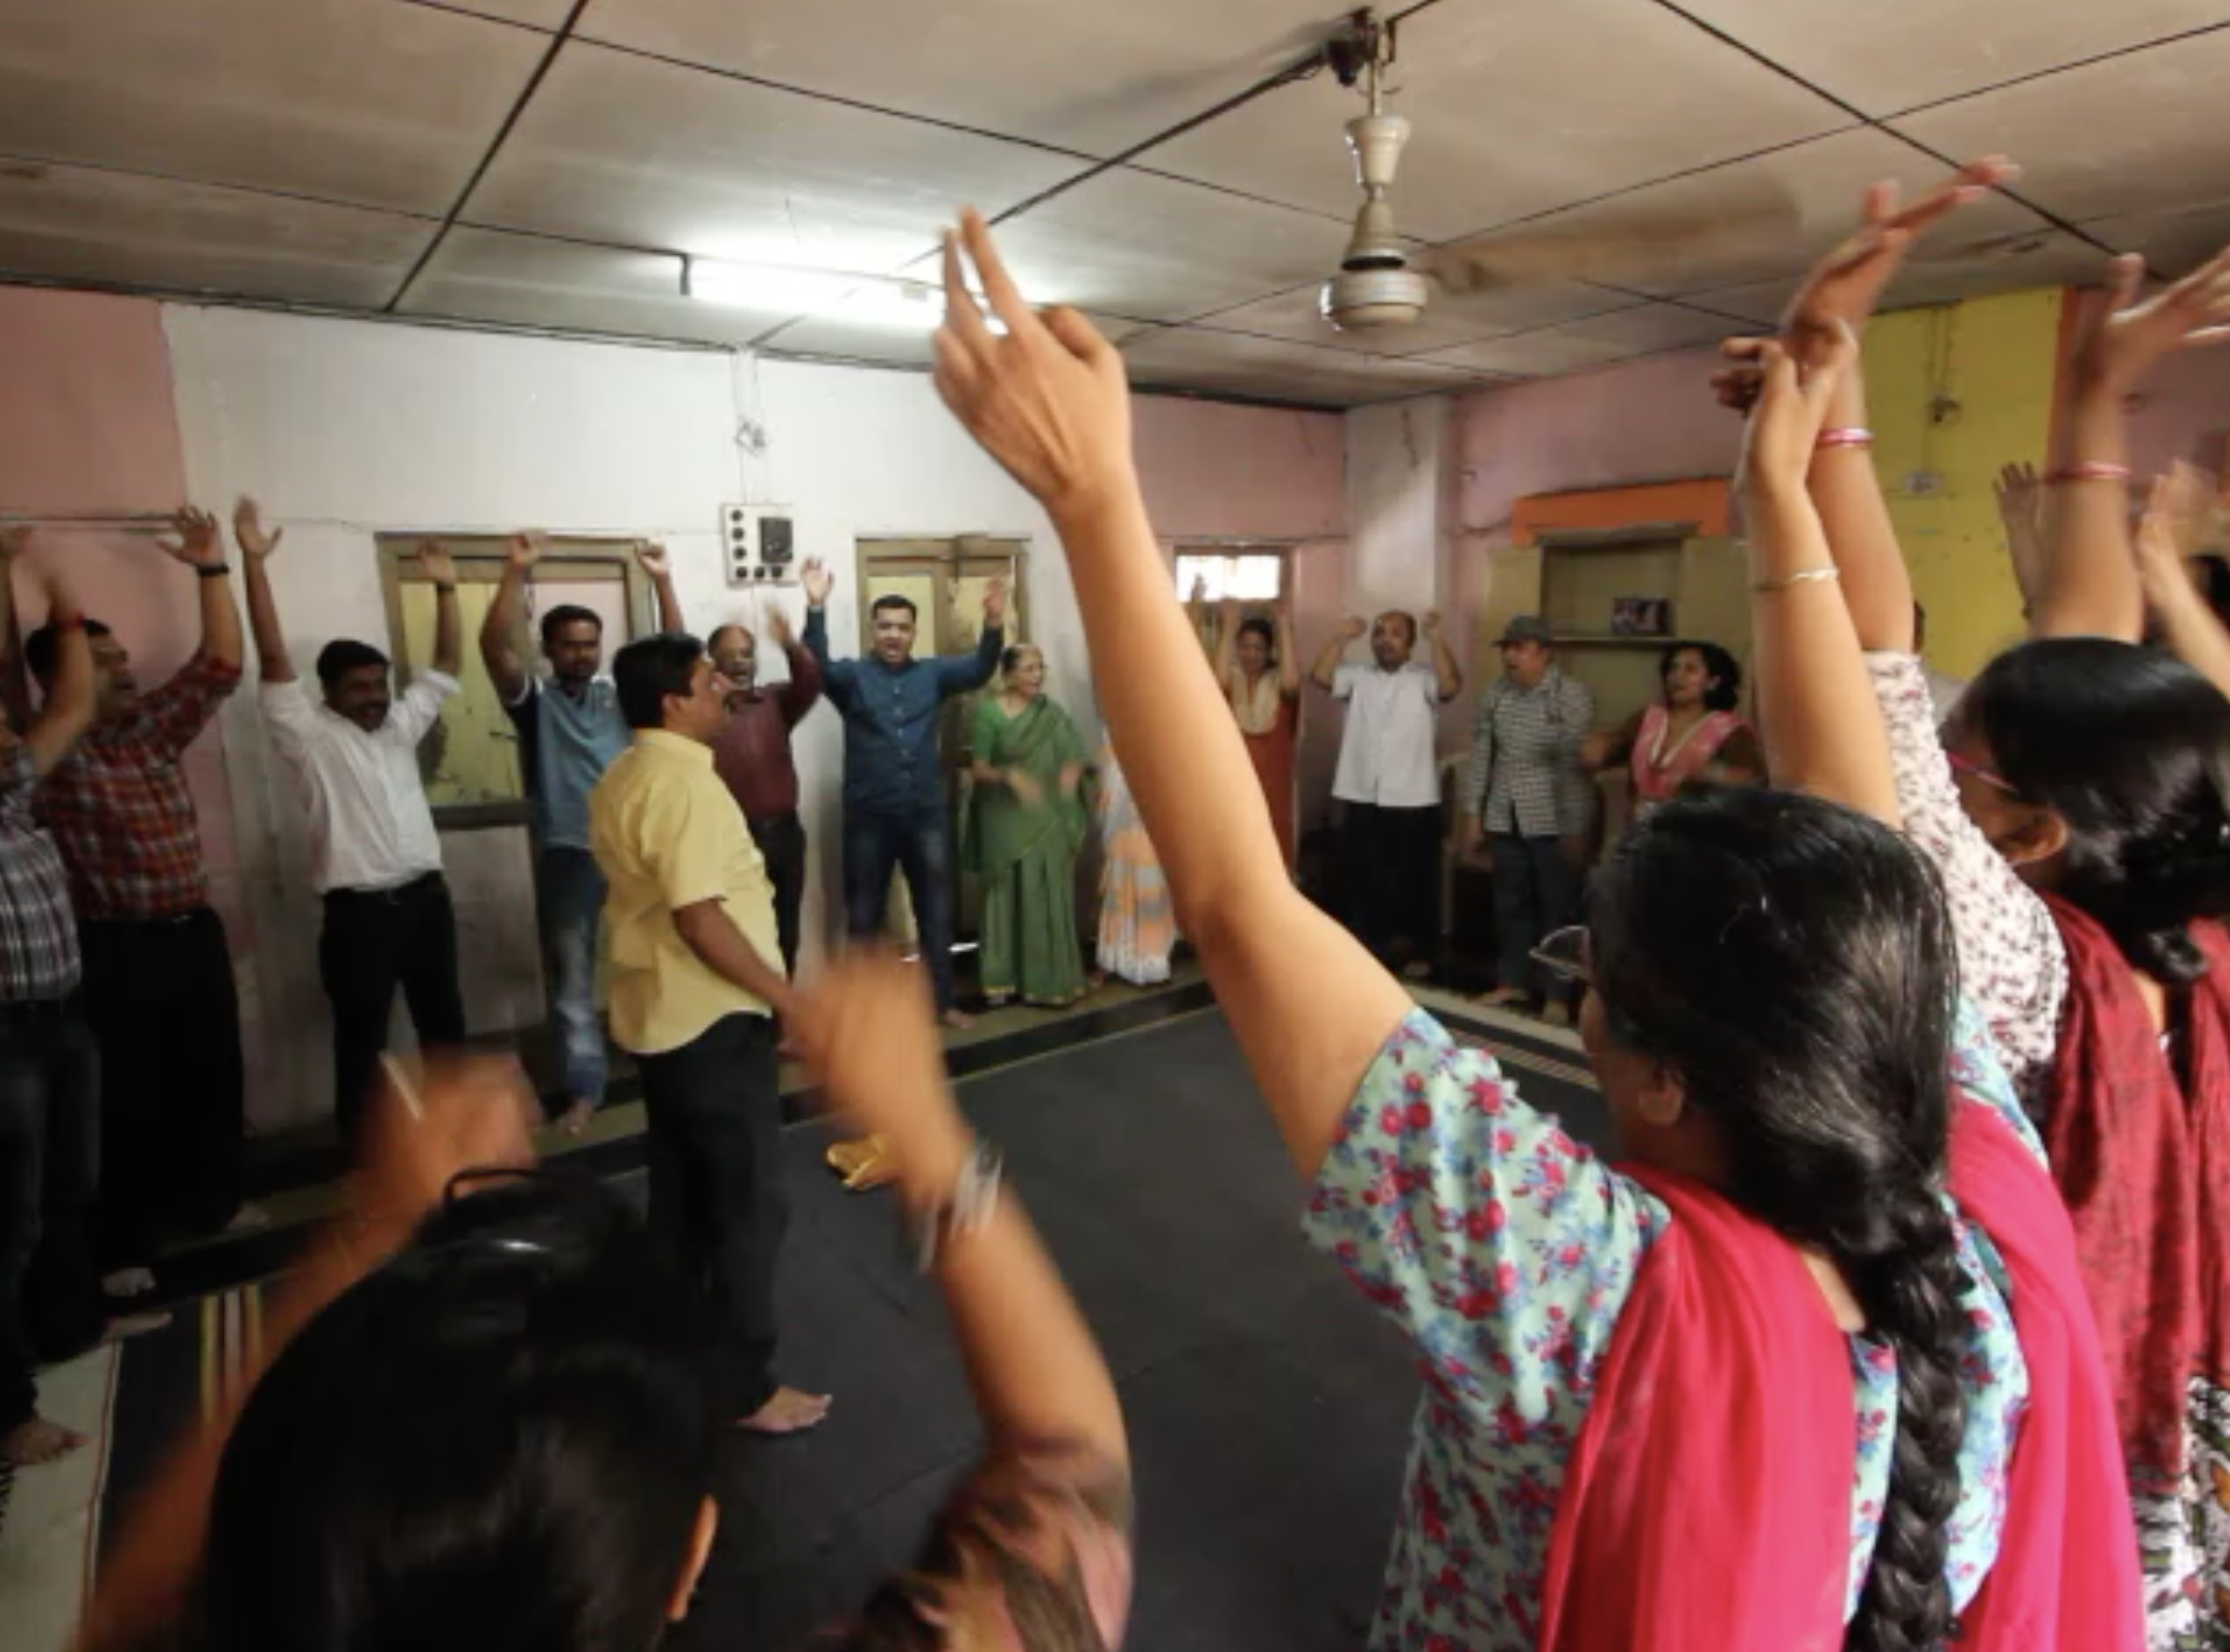 CHANGE: This support group in Pune has found a unique way of healing themind